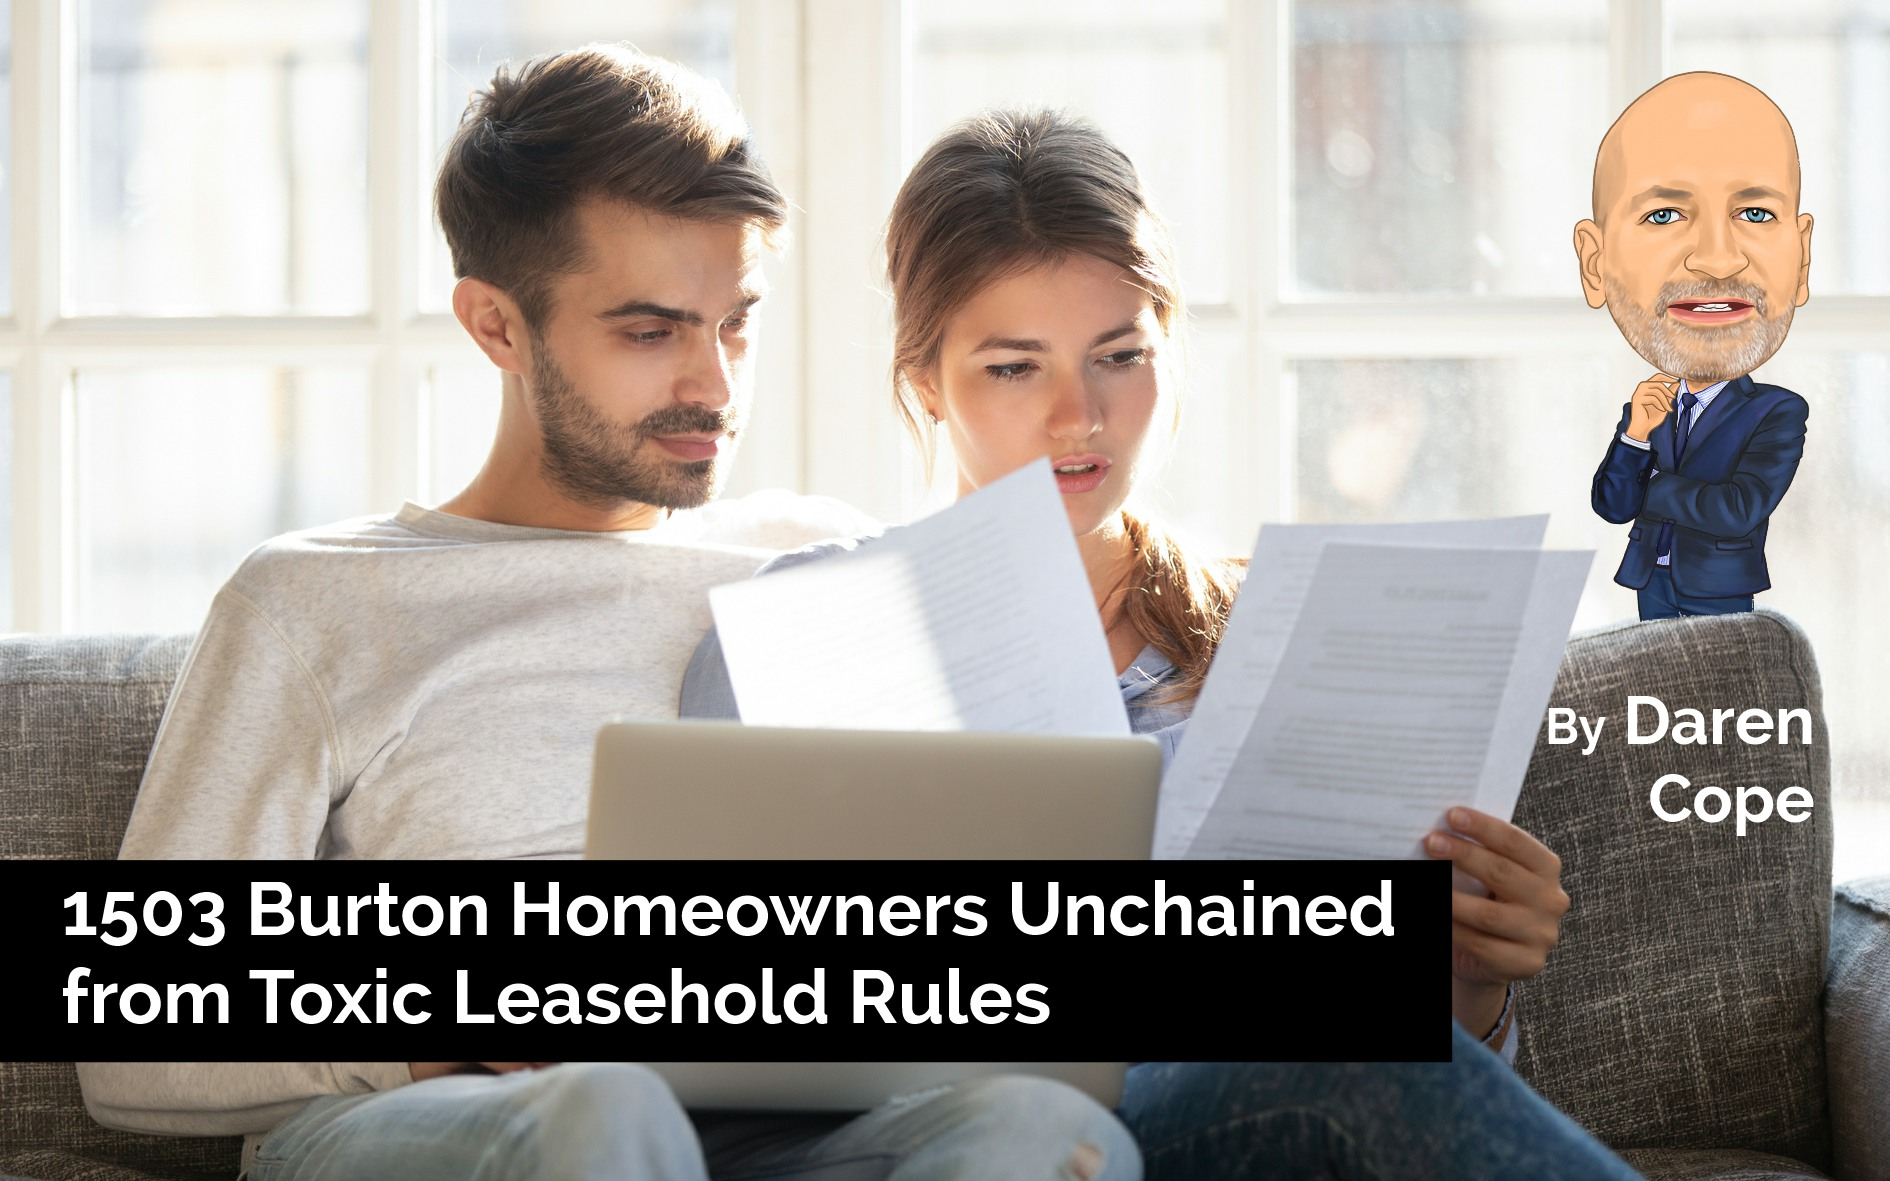 1503 Burton Homeowners Unchained from Toxic Leasehold Rules